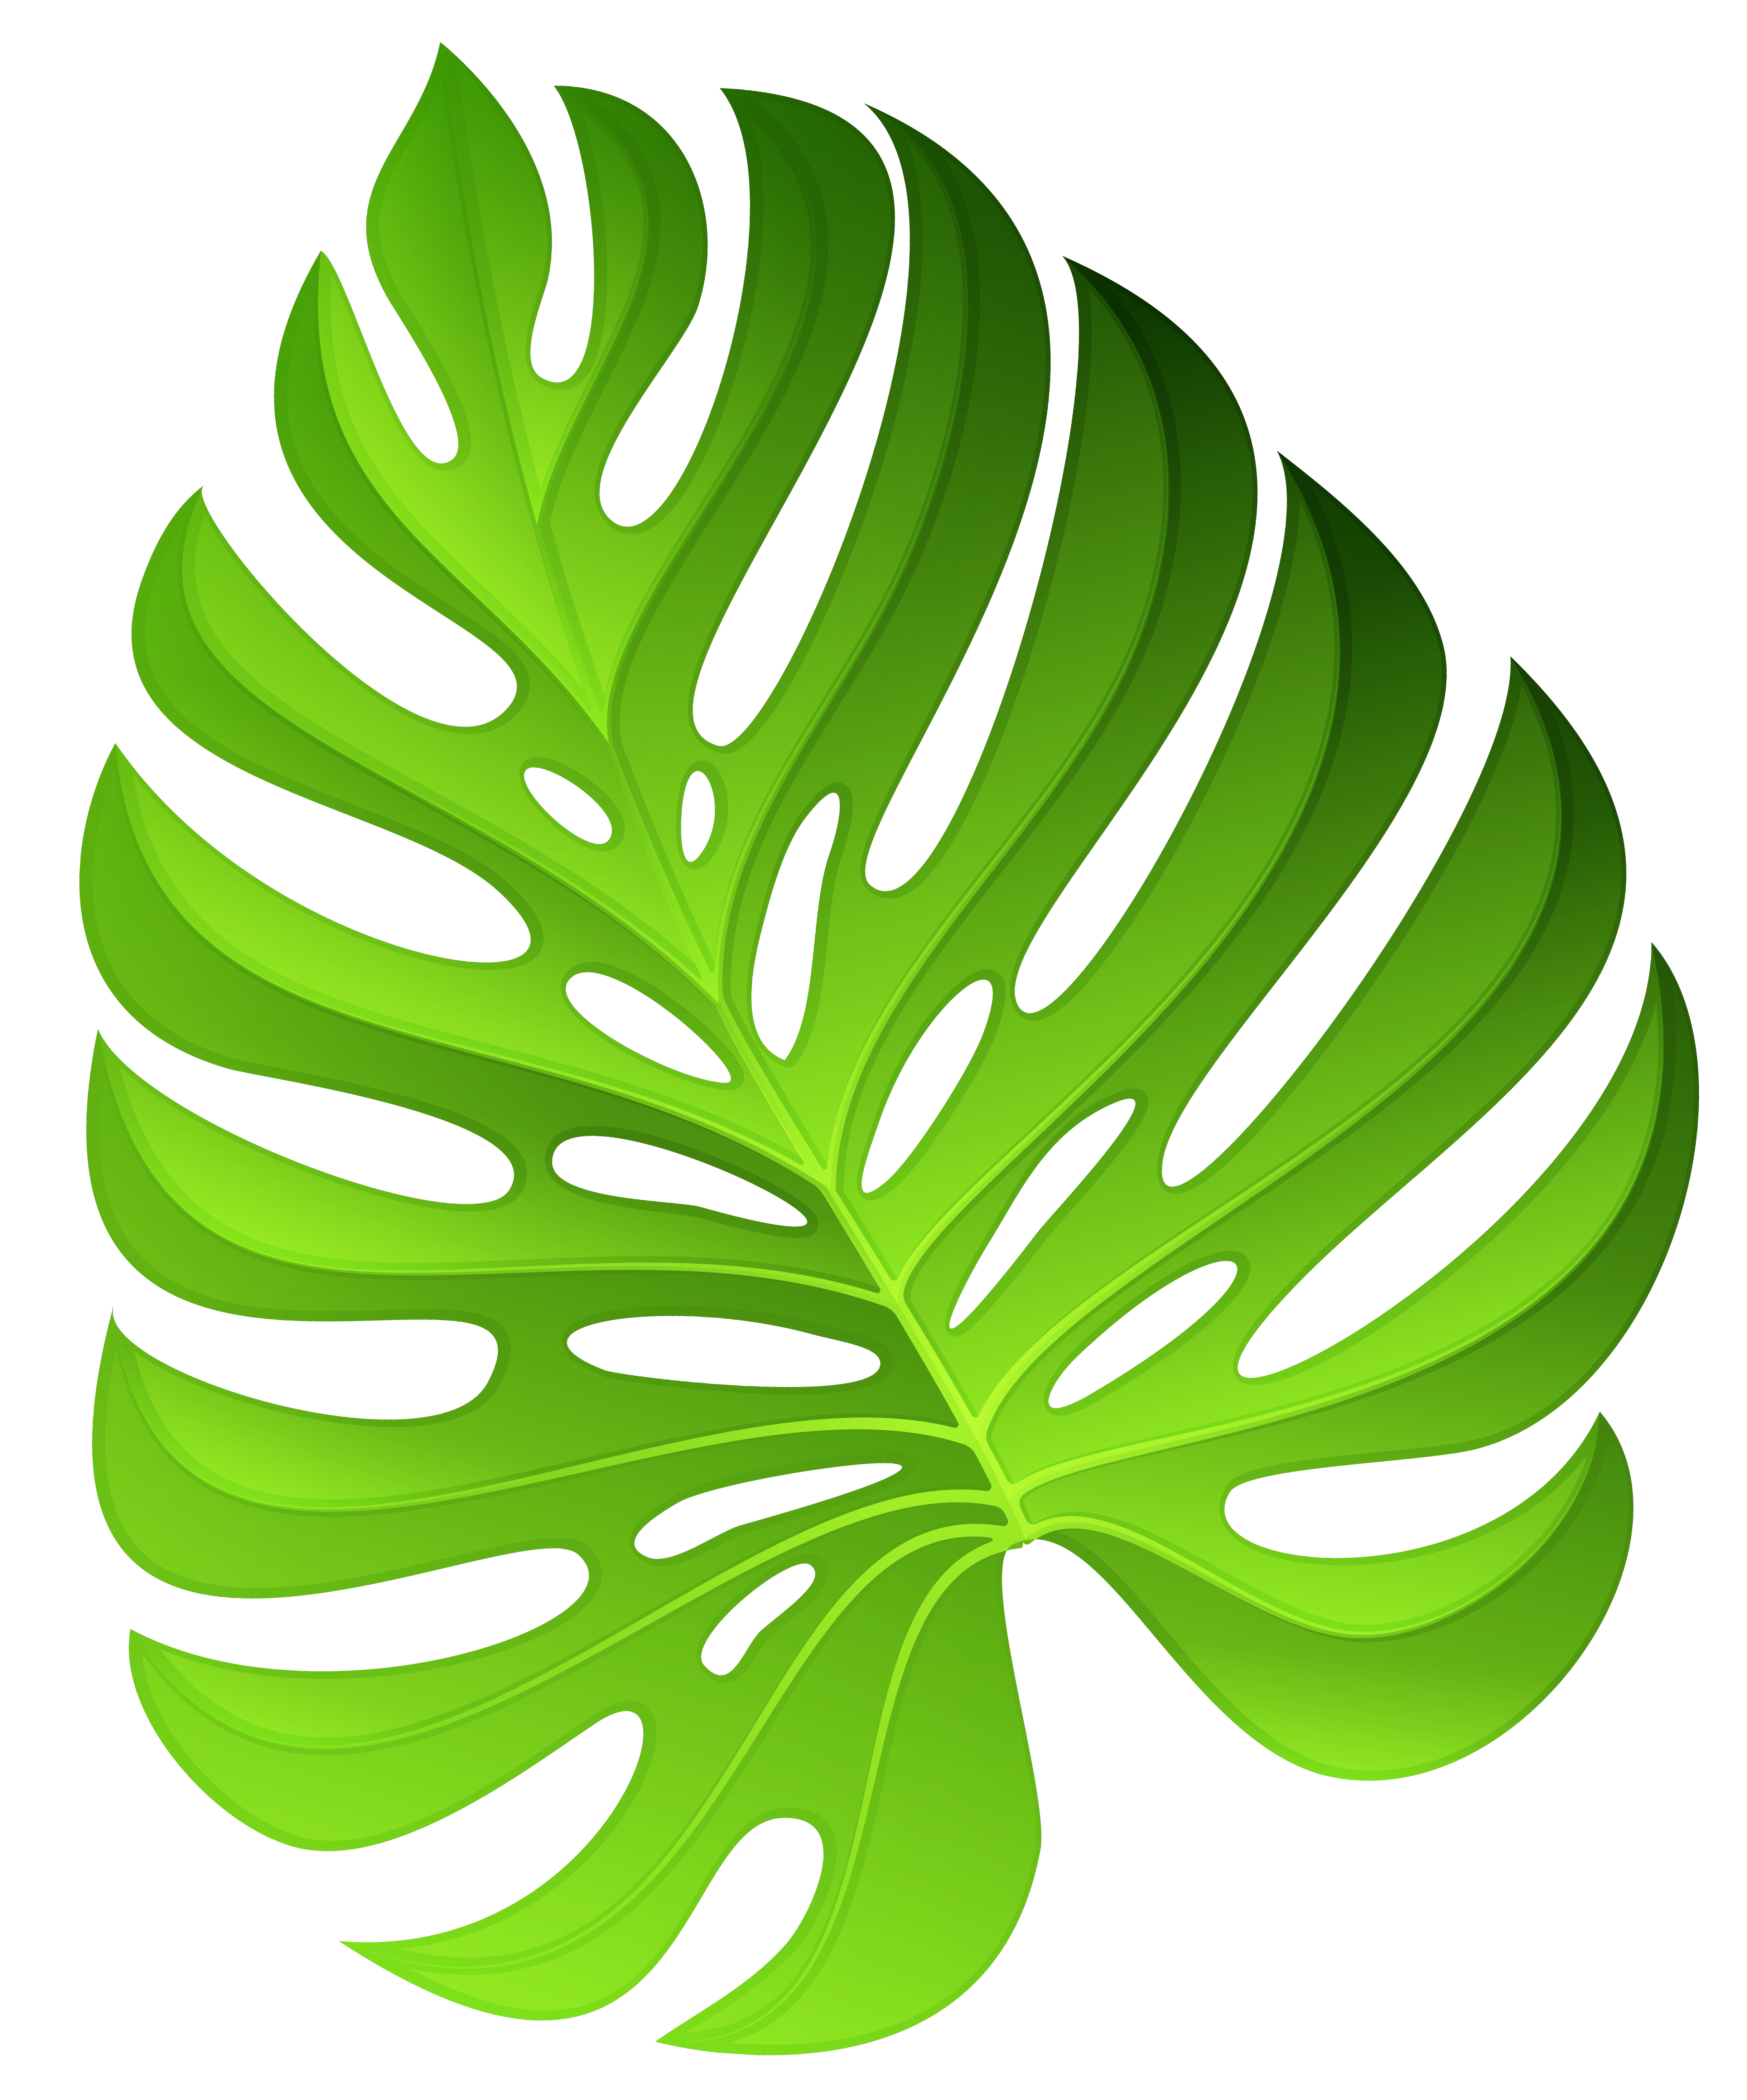 Plant clipart decoration. Exotic green png image